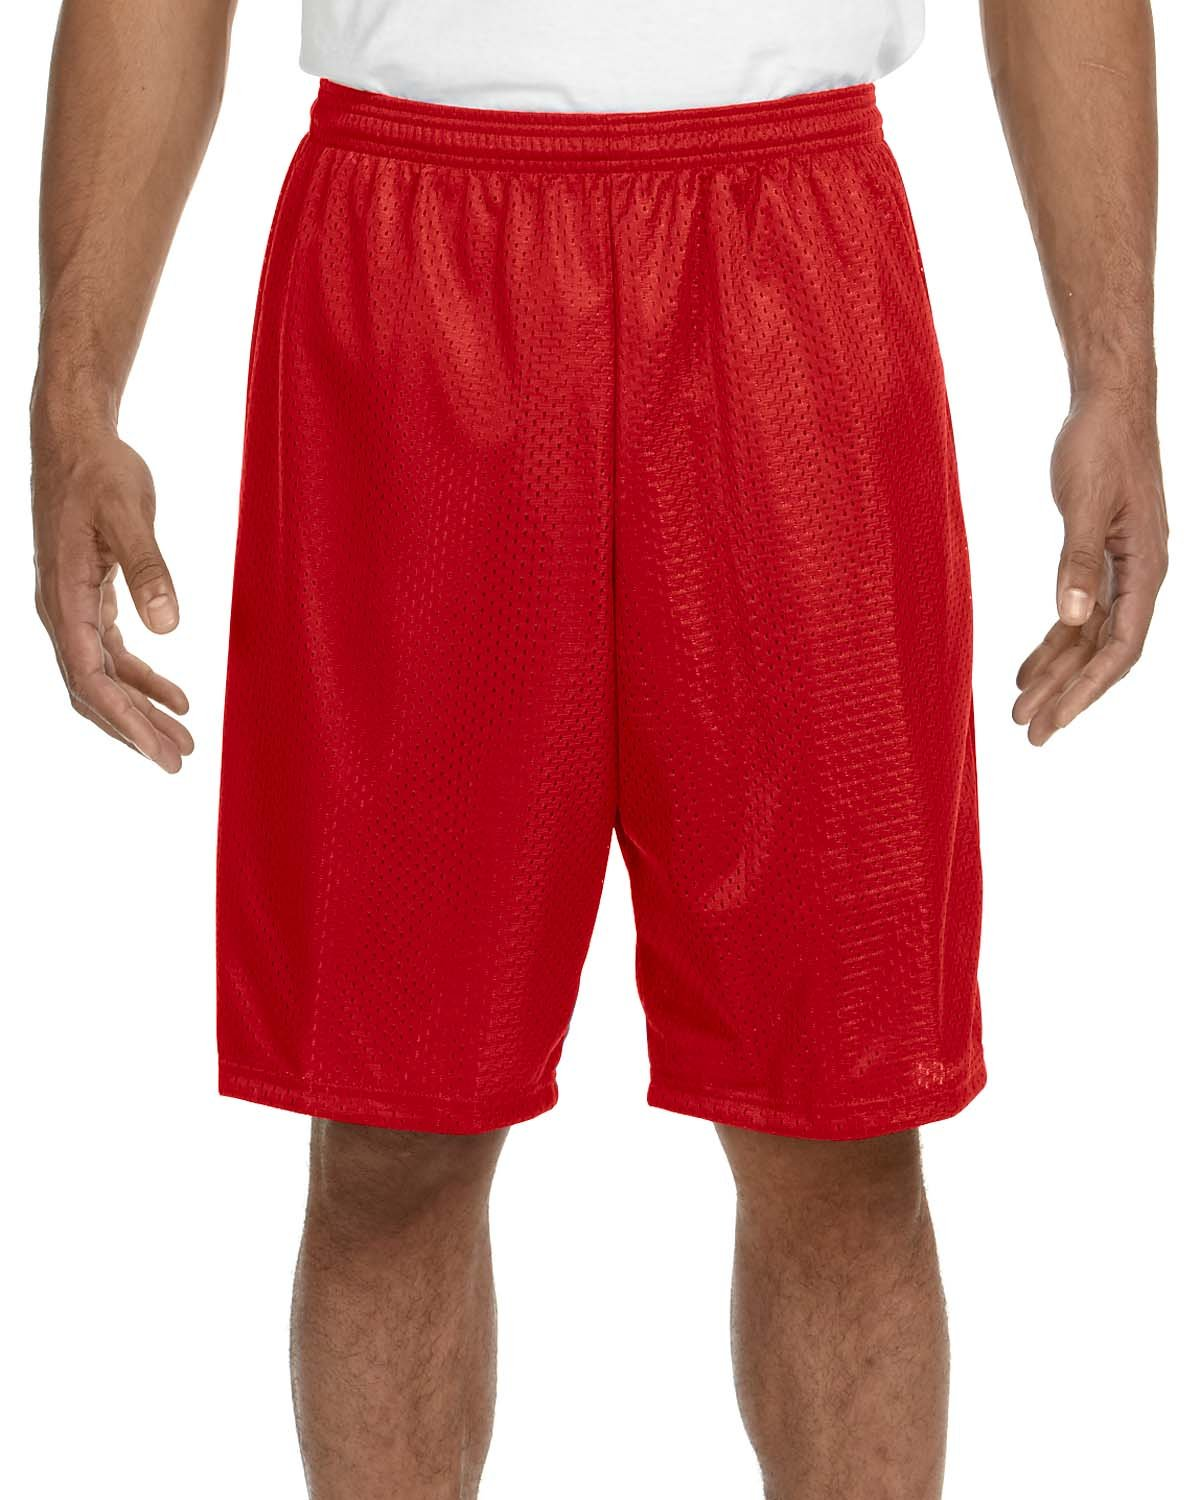 A4 Adult Tricot Mesh Short SCARLET